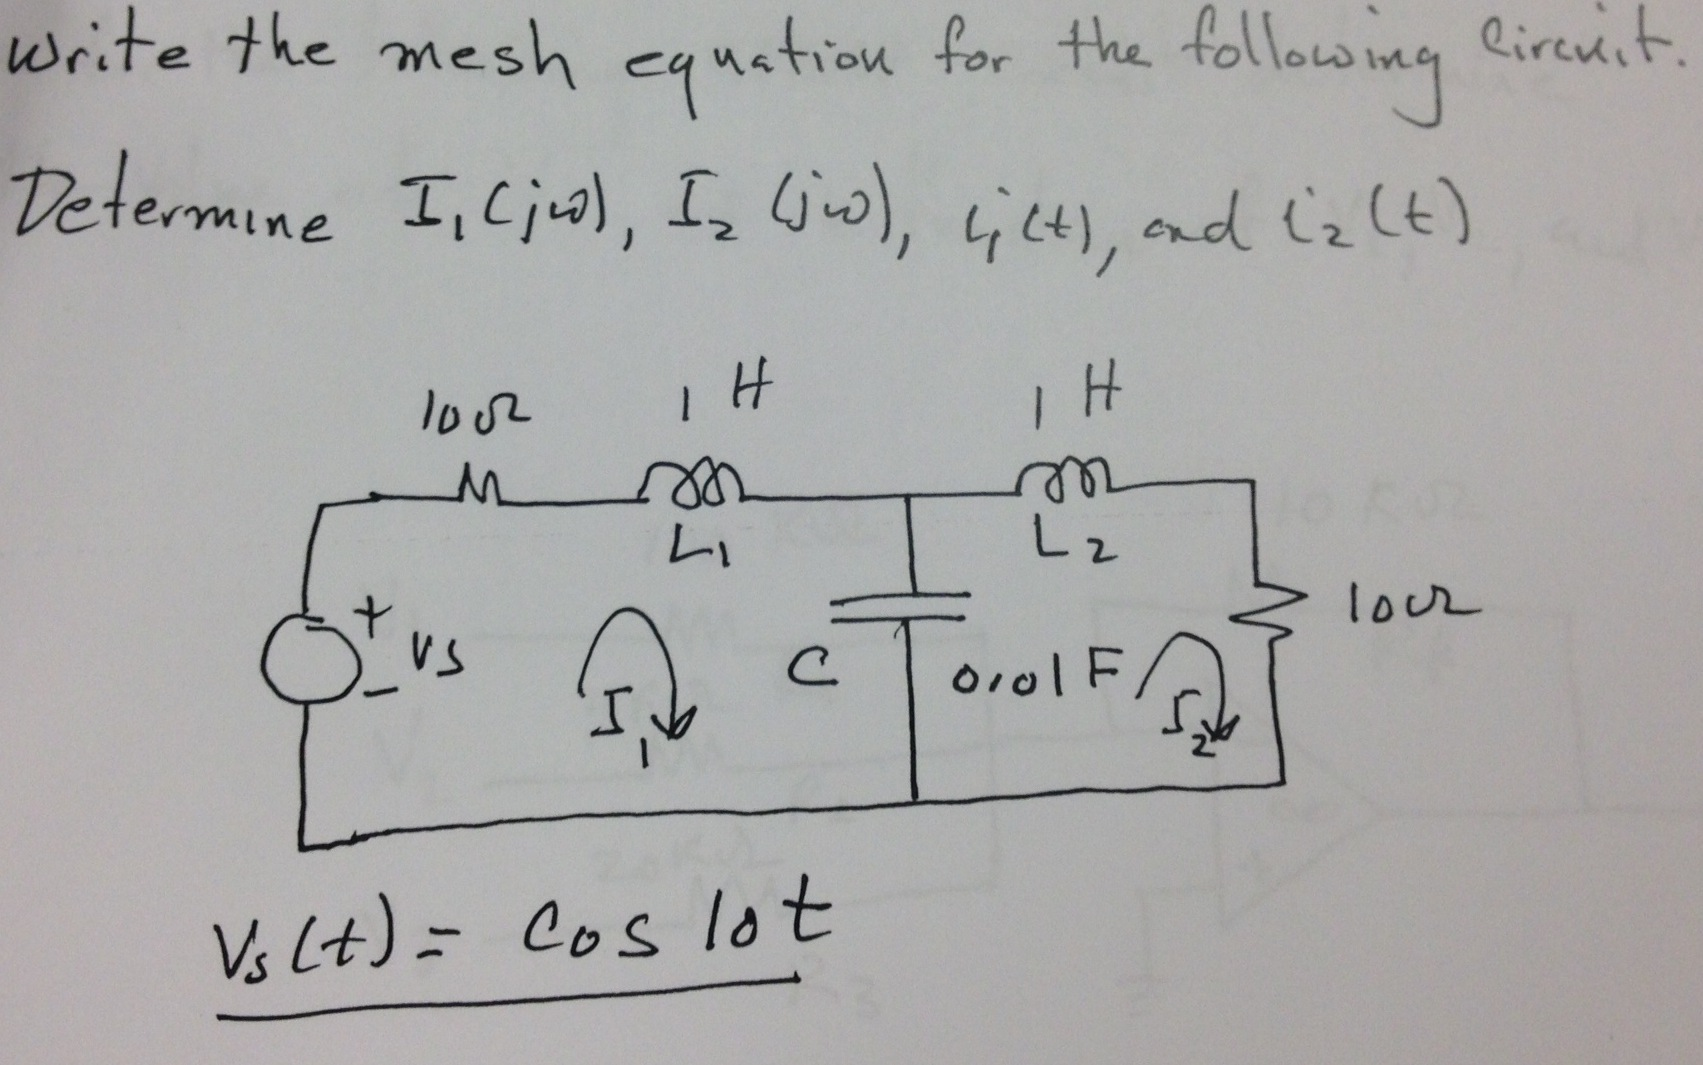 Write the mesh equation for the following circuit.